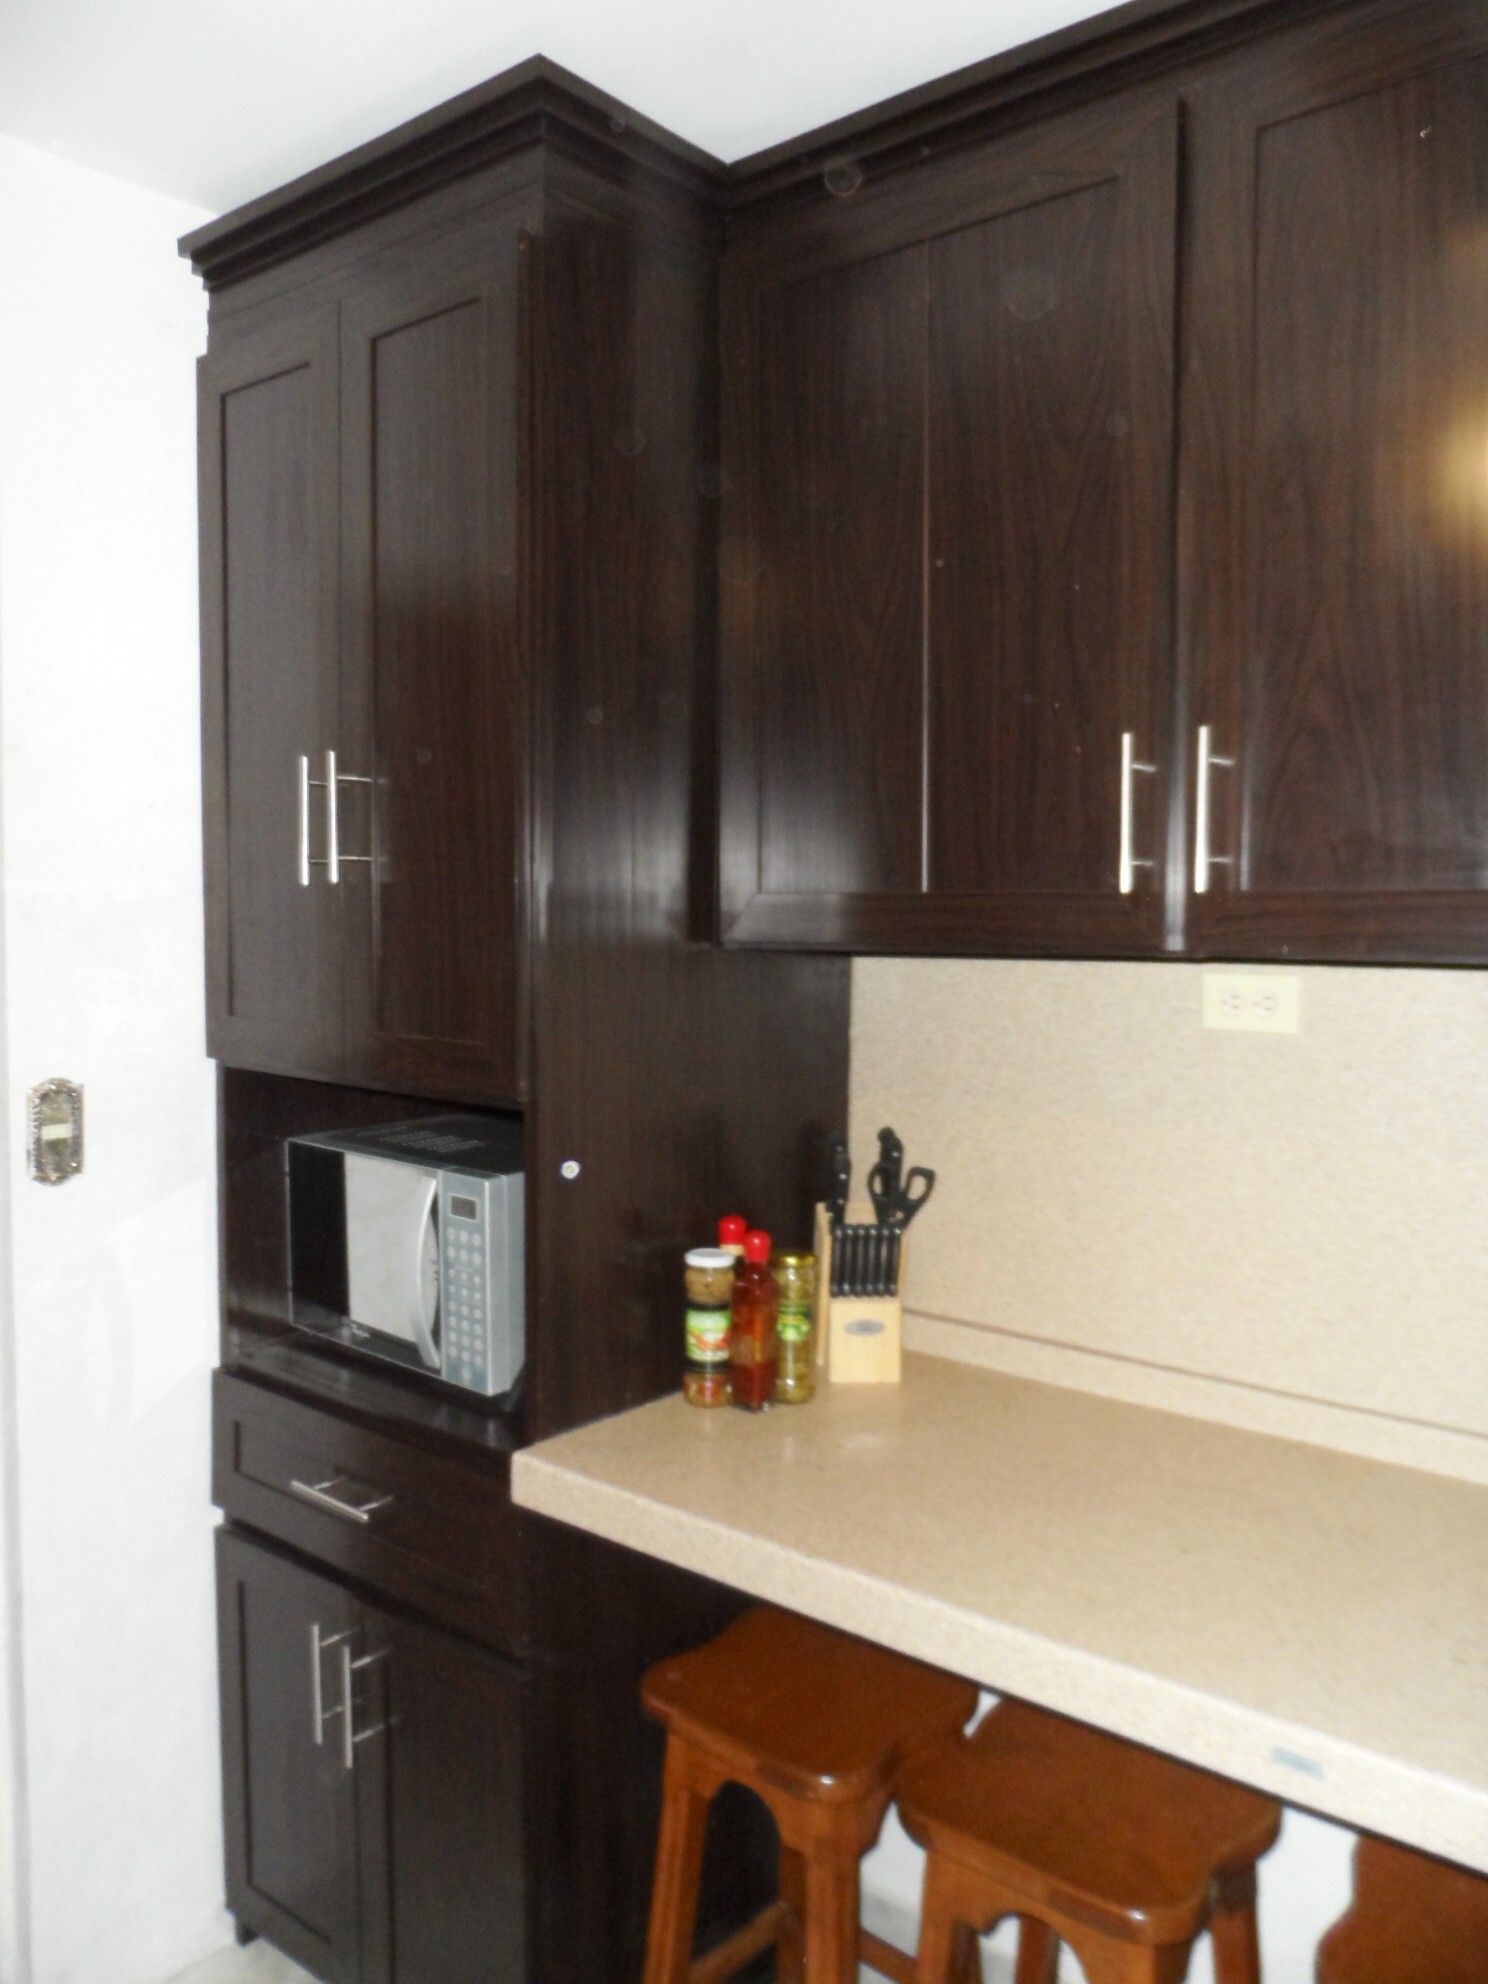 Rigid Plastic Kitchen Cabinets Are The Solution For Water Leaks And High Costs Of Maintenance Or Mold Chec Plastic Kitchen Cabinets Kitchens And Bath Kitchen